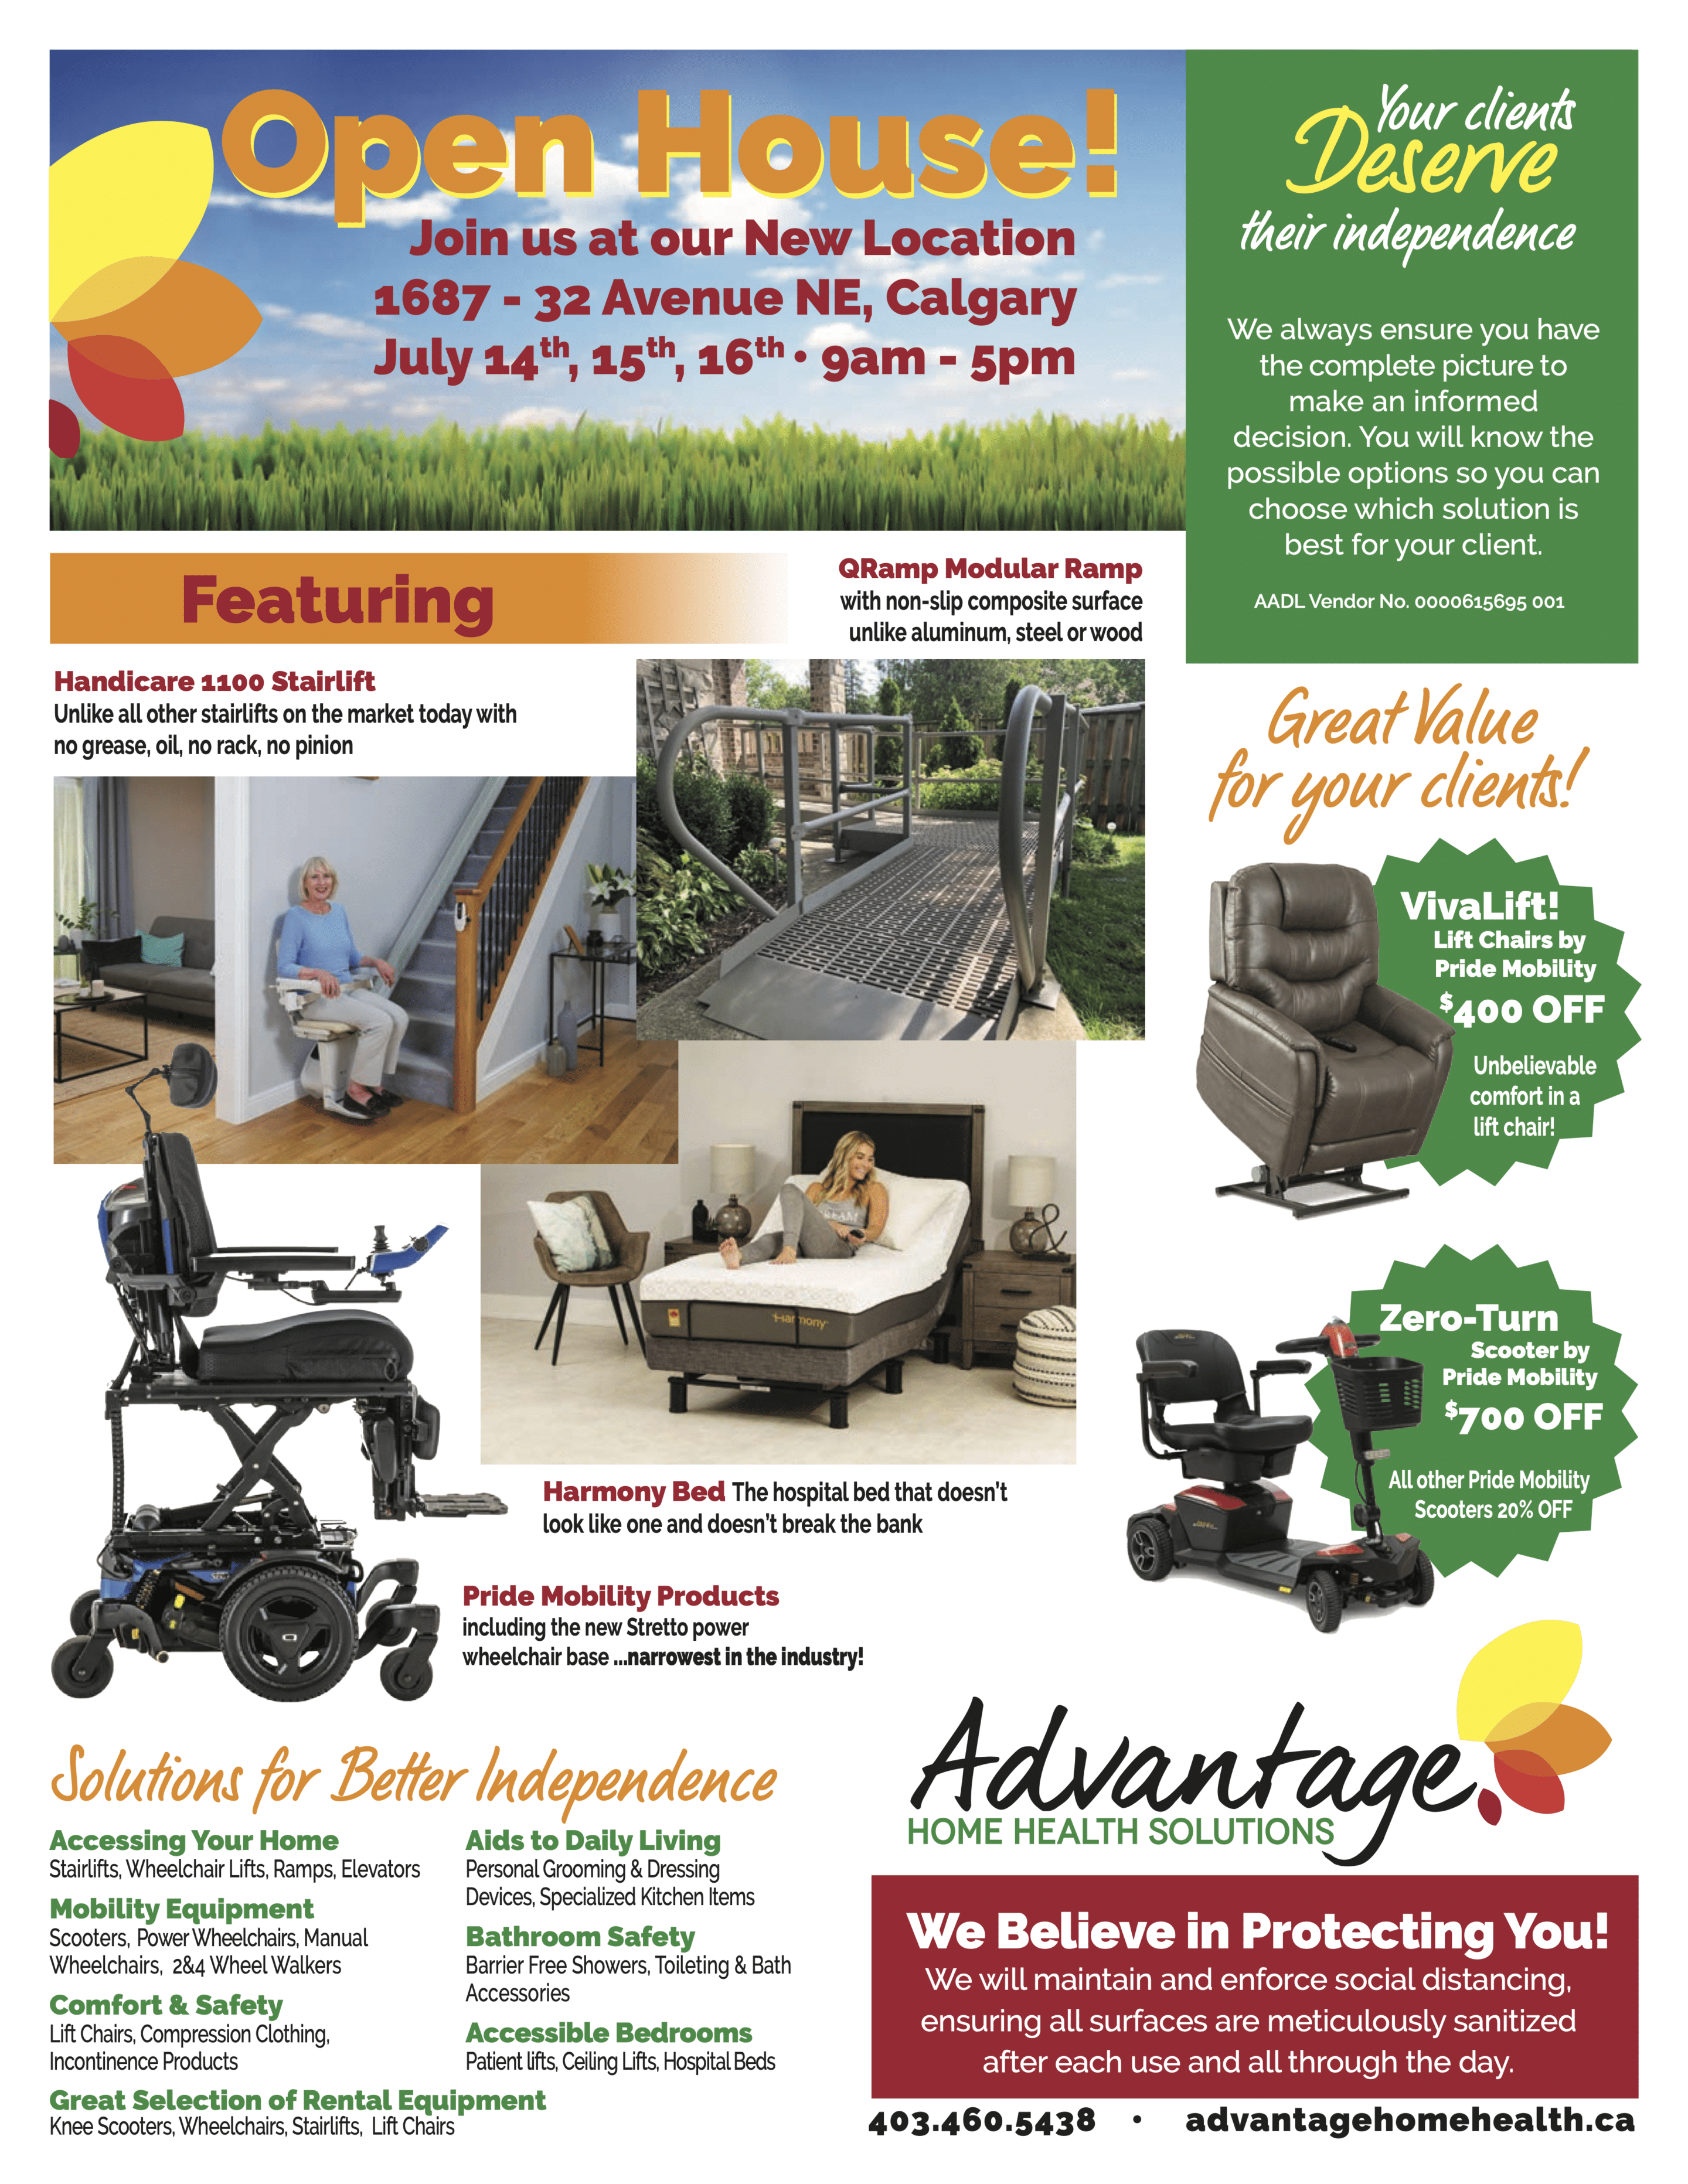 Advantage Home Health Solutions | Health Care Professionals Open House